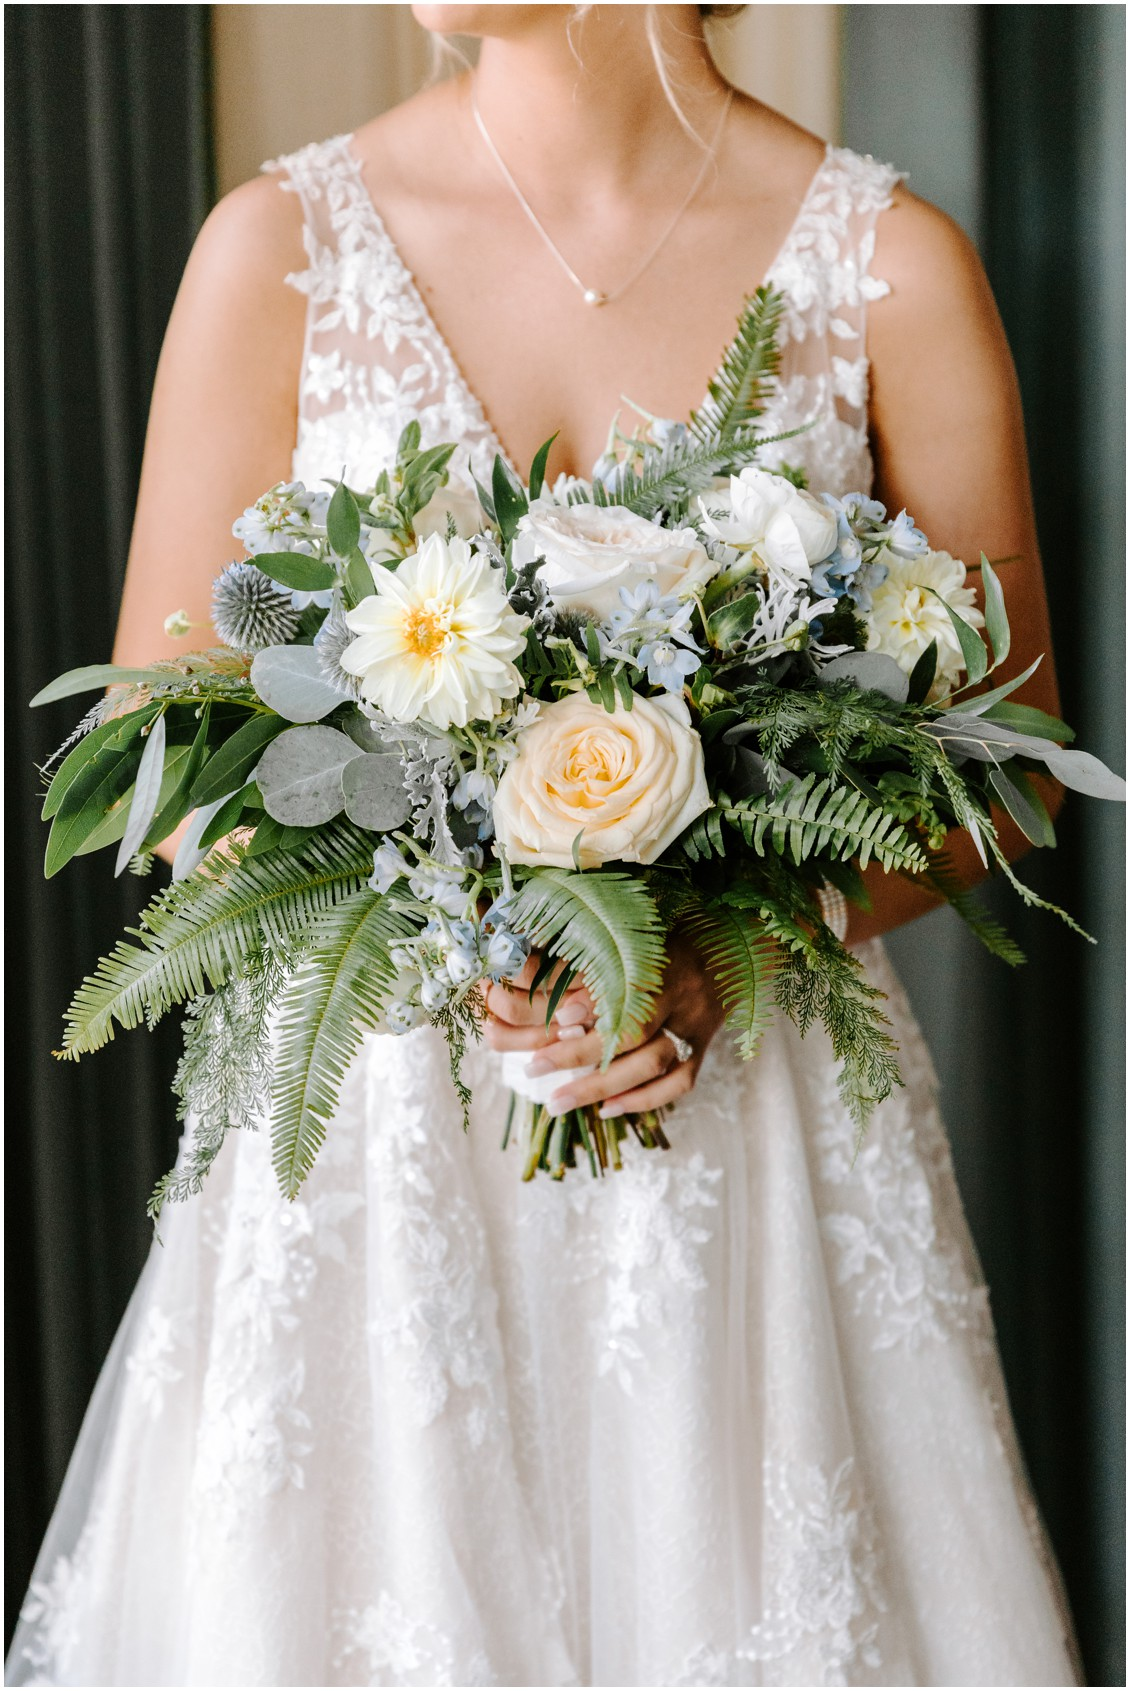 Bride holding bouquet details demure blue and soft greenery | My Eastern Shore Wedding | Sherwood Florist